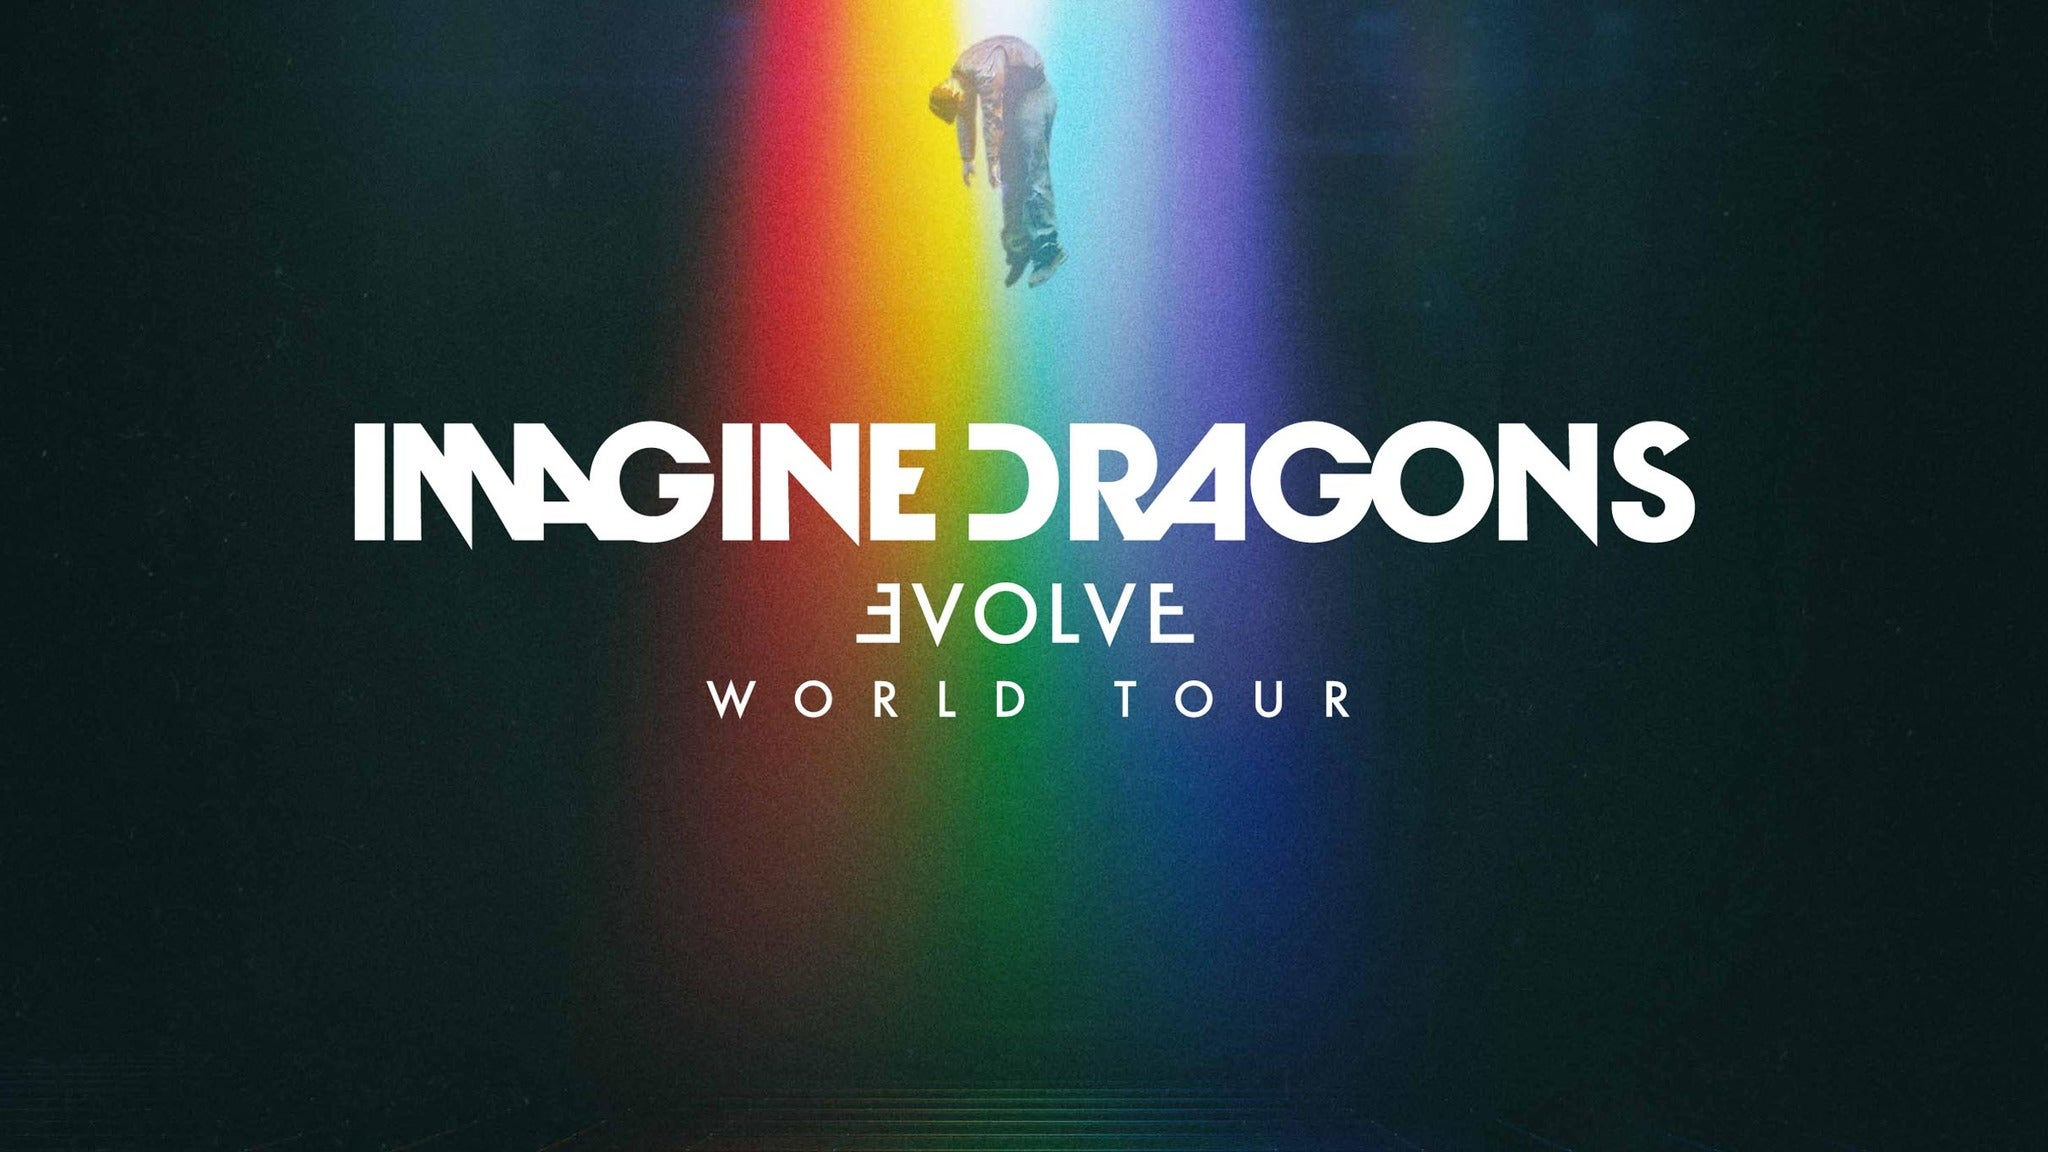 Imagine Dragons: EVOLVE TOUR at The Forum